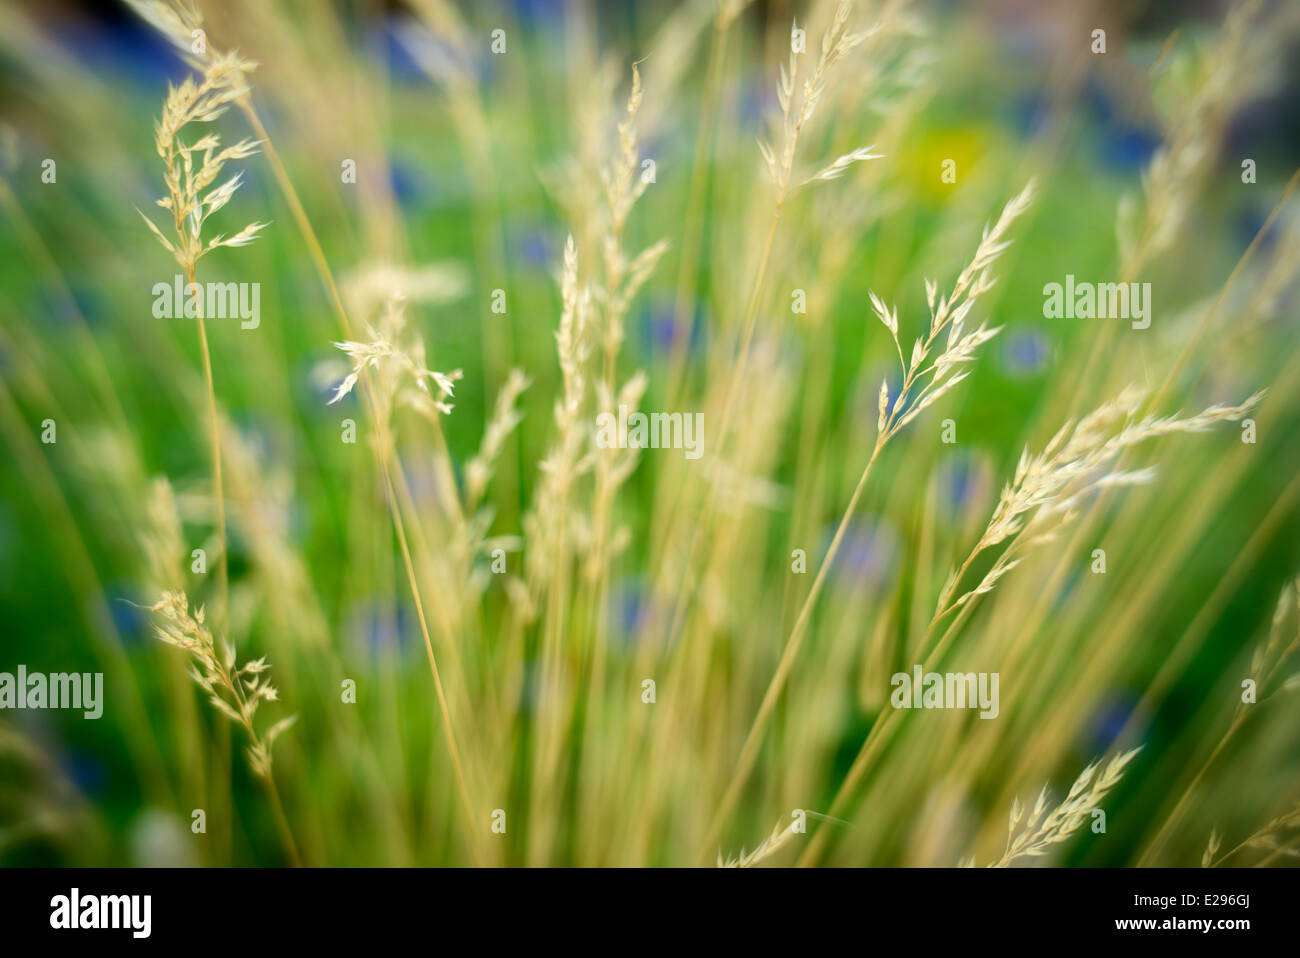 Grasses and blurred background. Colorado - Stock Image